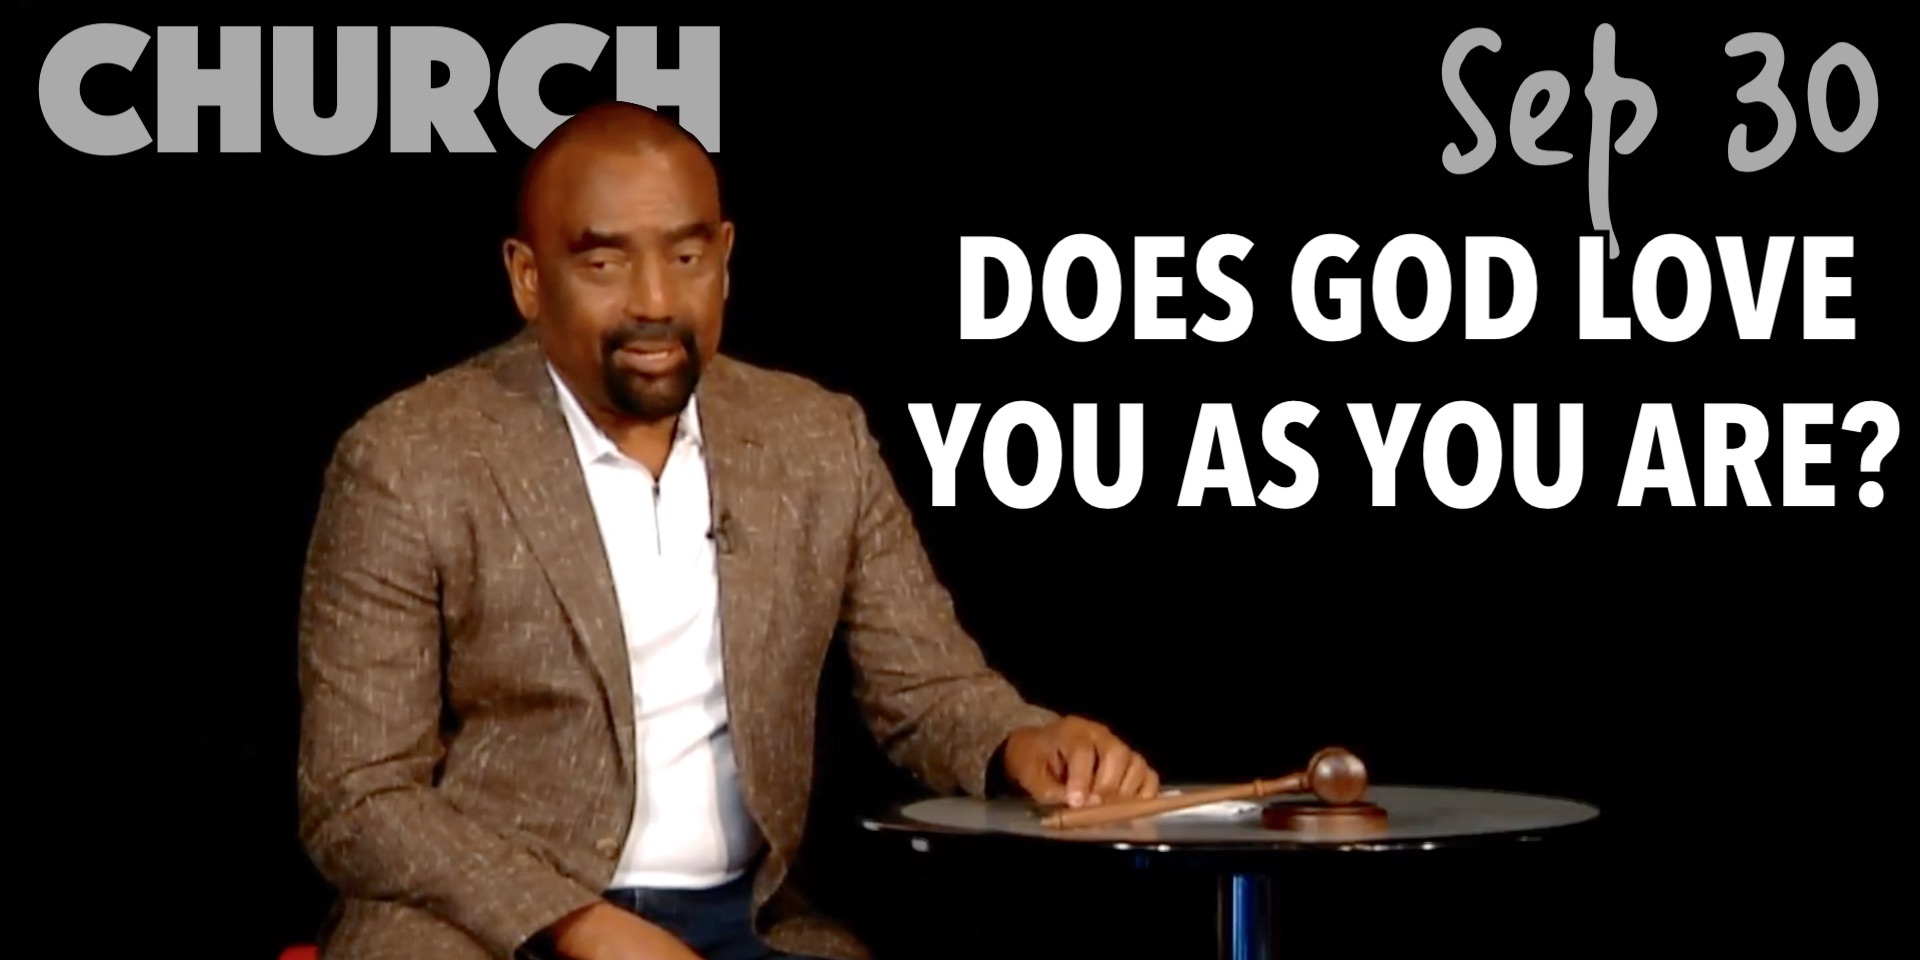 Does God Love You As You Are? (Church Sep 30)